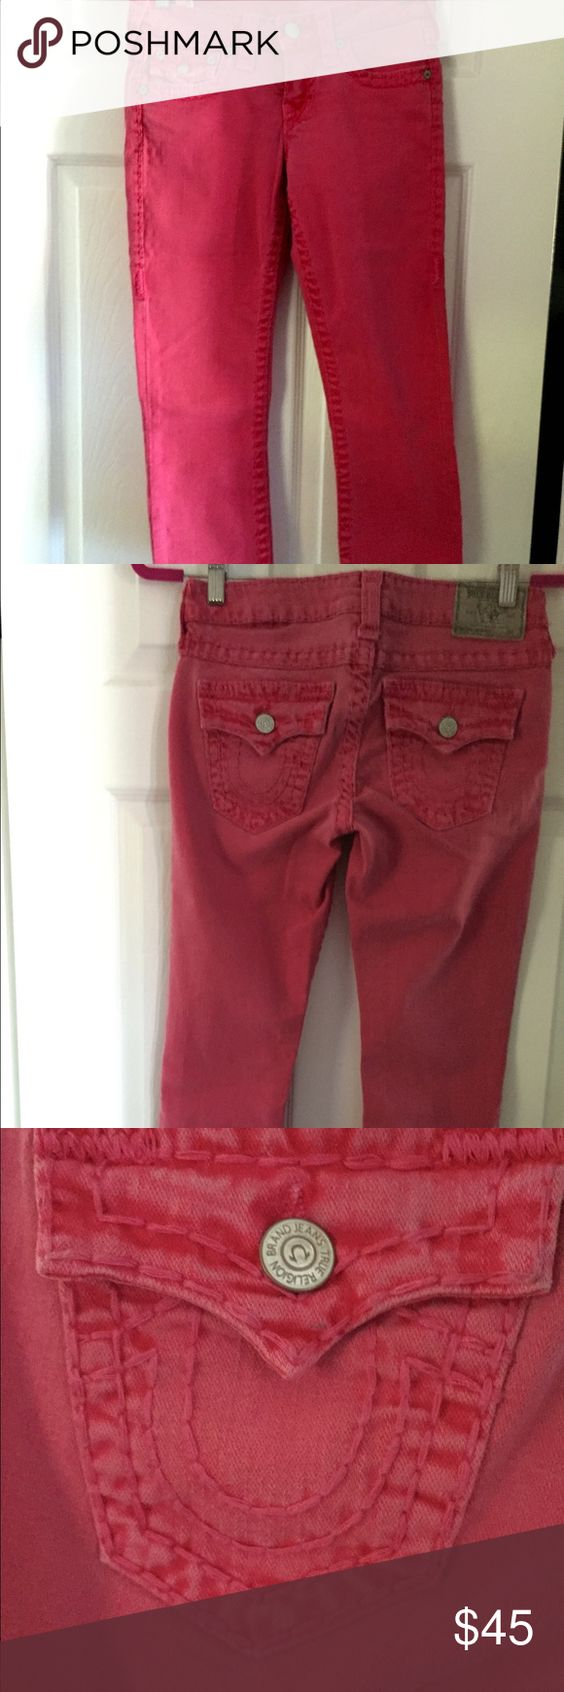 Authentic True Religion capris The color said fuchsia, but there more of a washed coral. Size 27. True Religion Pants Capris